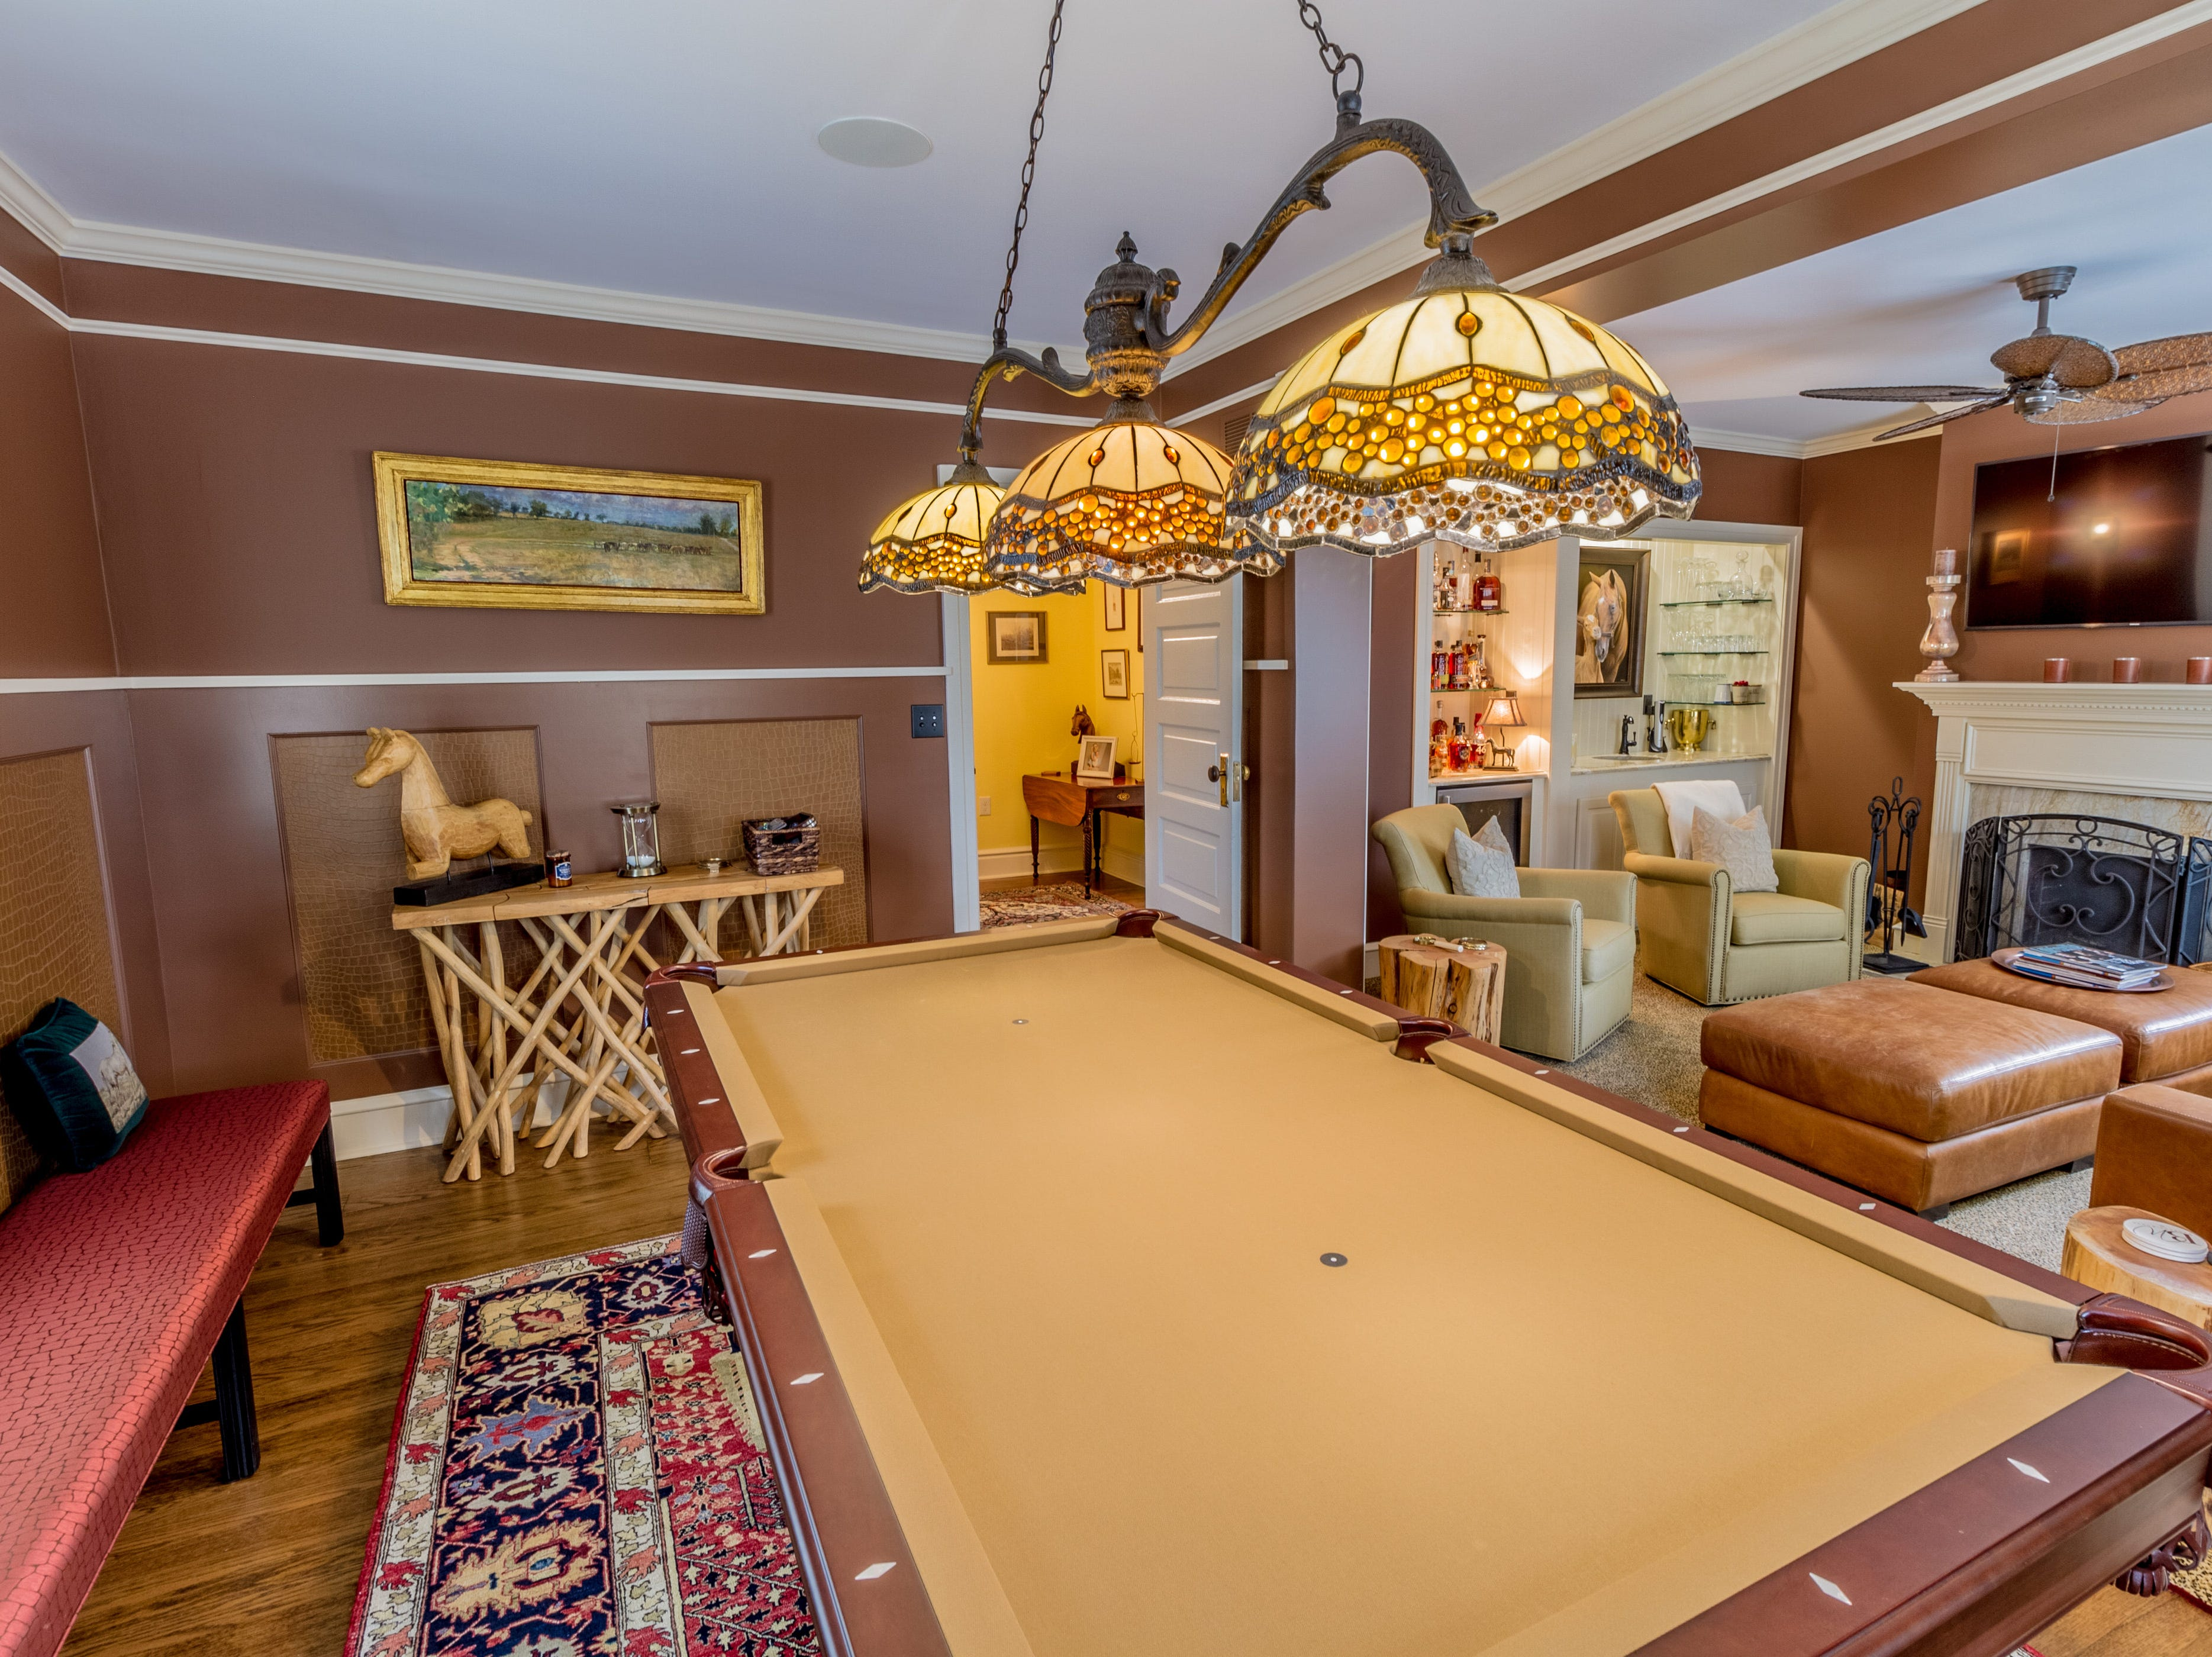 A billiards room adjoins the second-floor family room in the house at 1100 N. Rodney St. in Cool Spring.